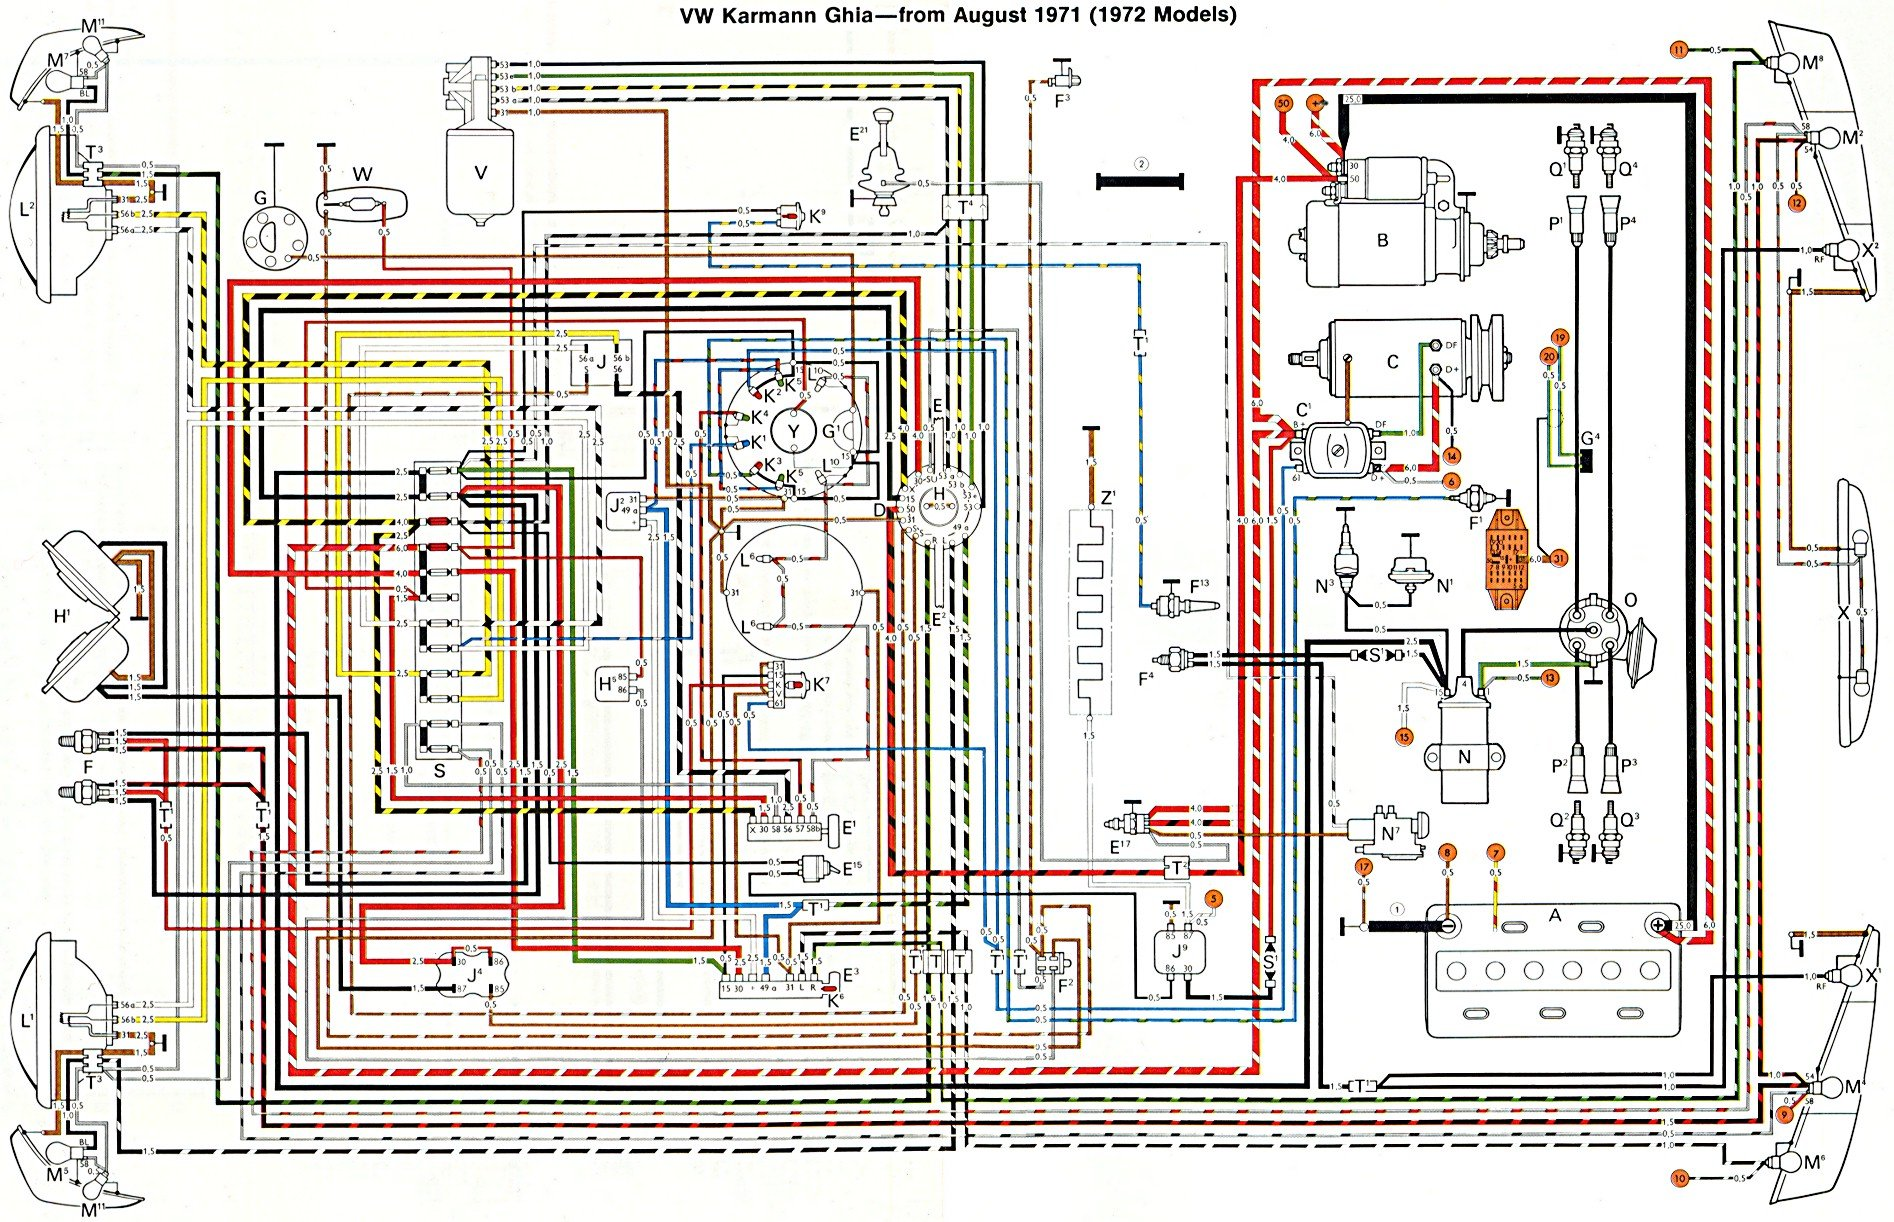 72ghia das volks vintage volkswagen gruppe \u2022 view topic turning signal 1972 beetle wiring diagram at bayanpartner.co